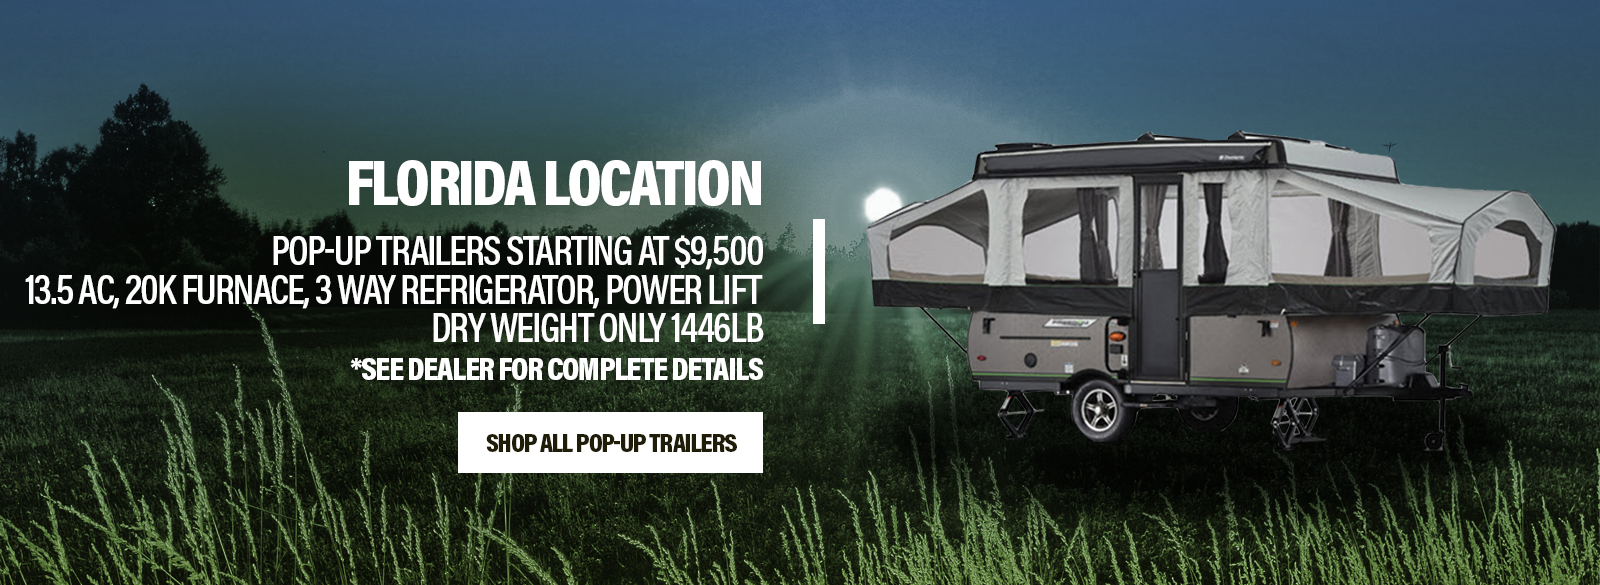 TriAmRV_FloridaLocationPopUps_HomepageBanner_June19.png